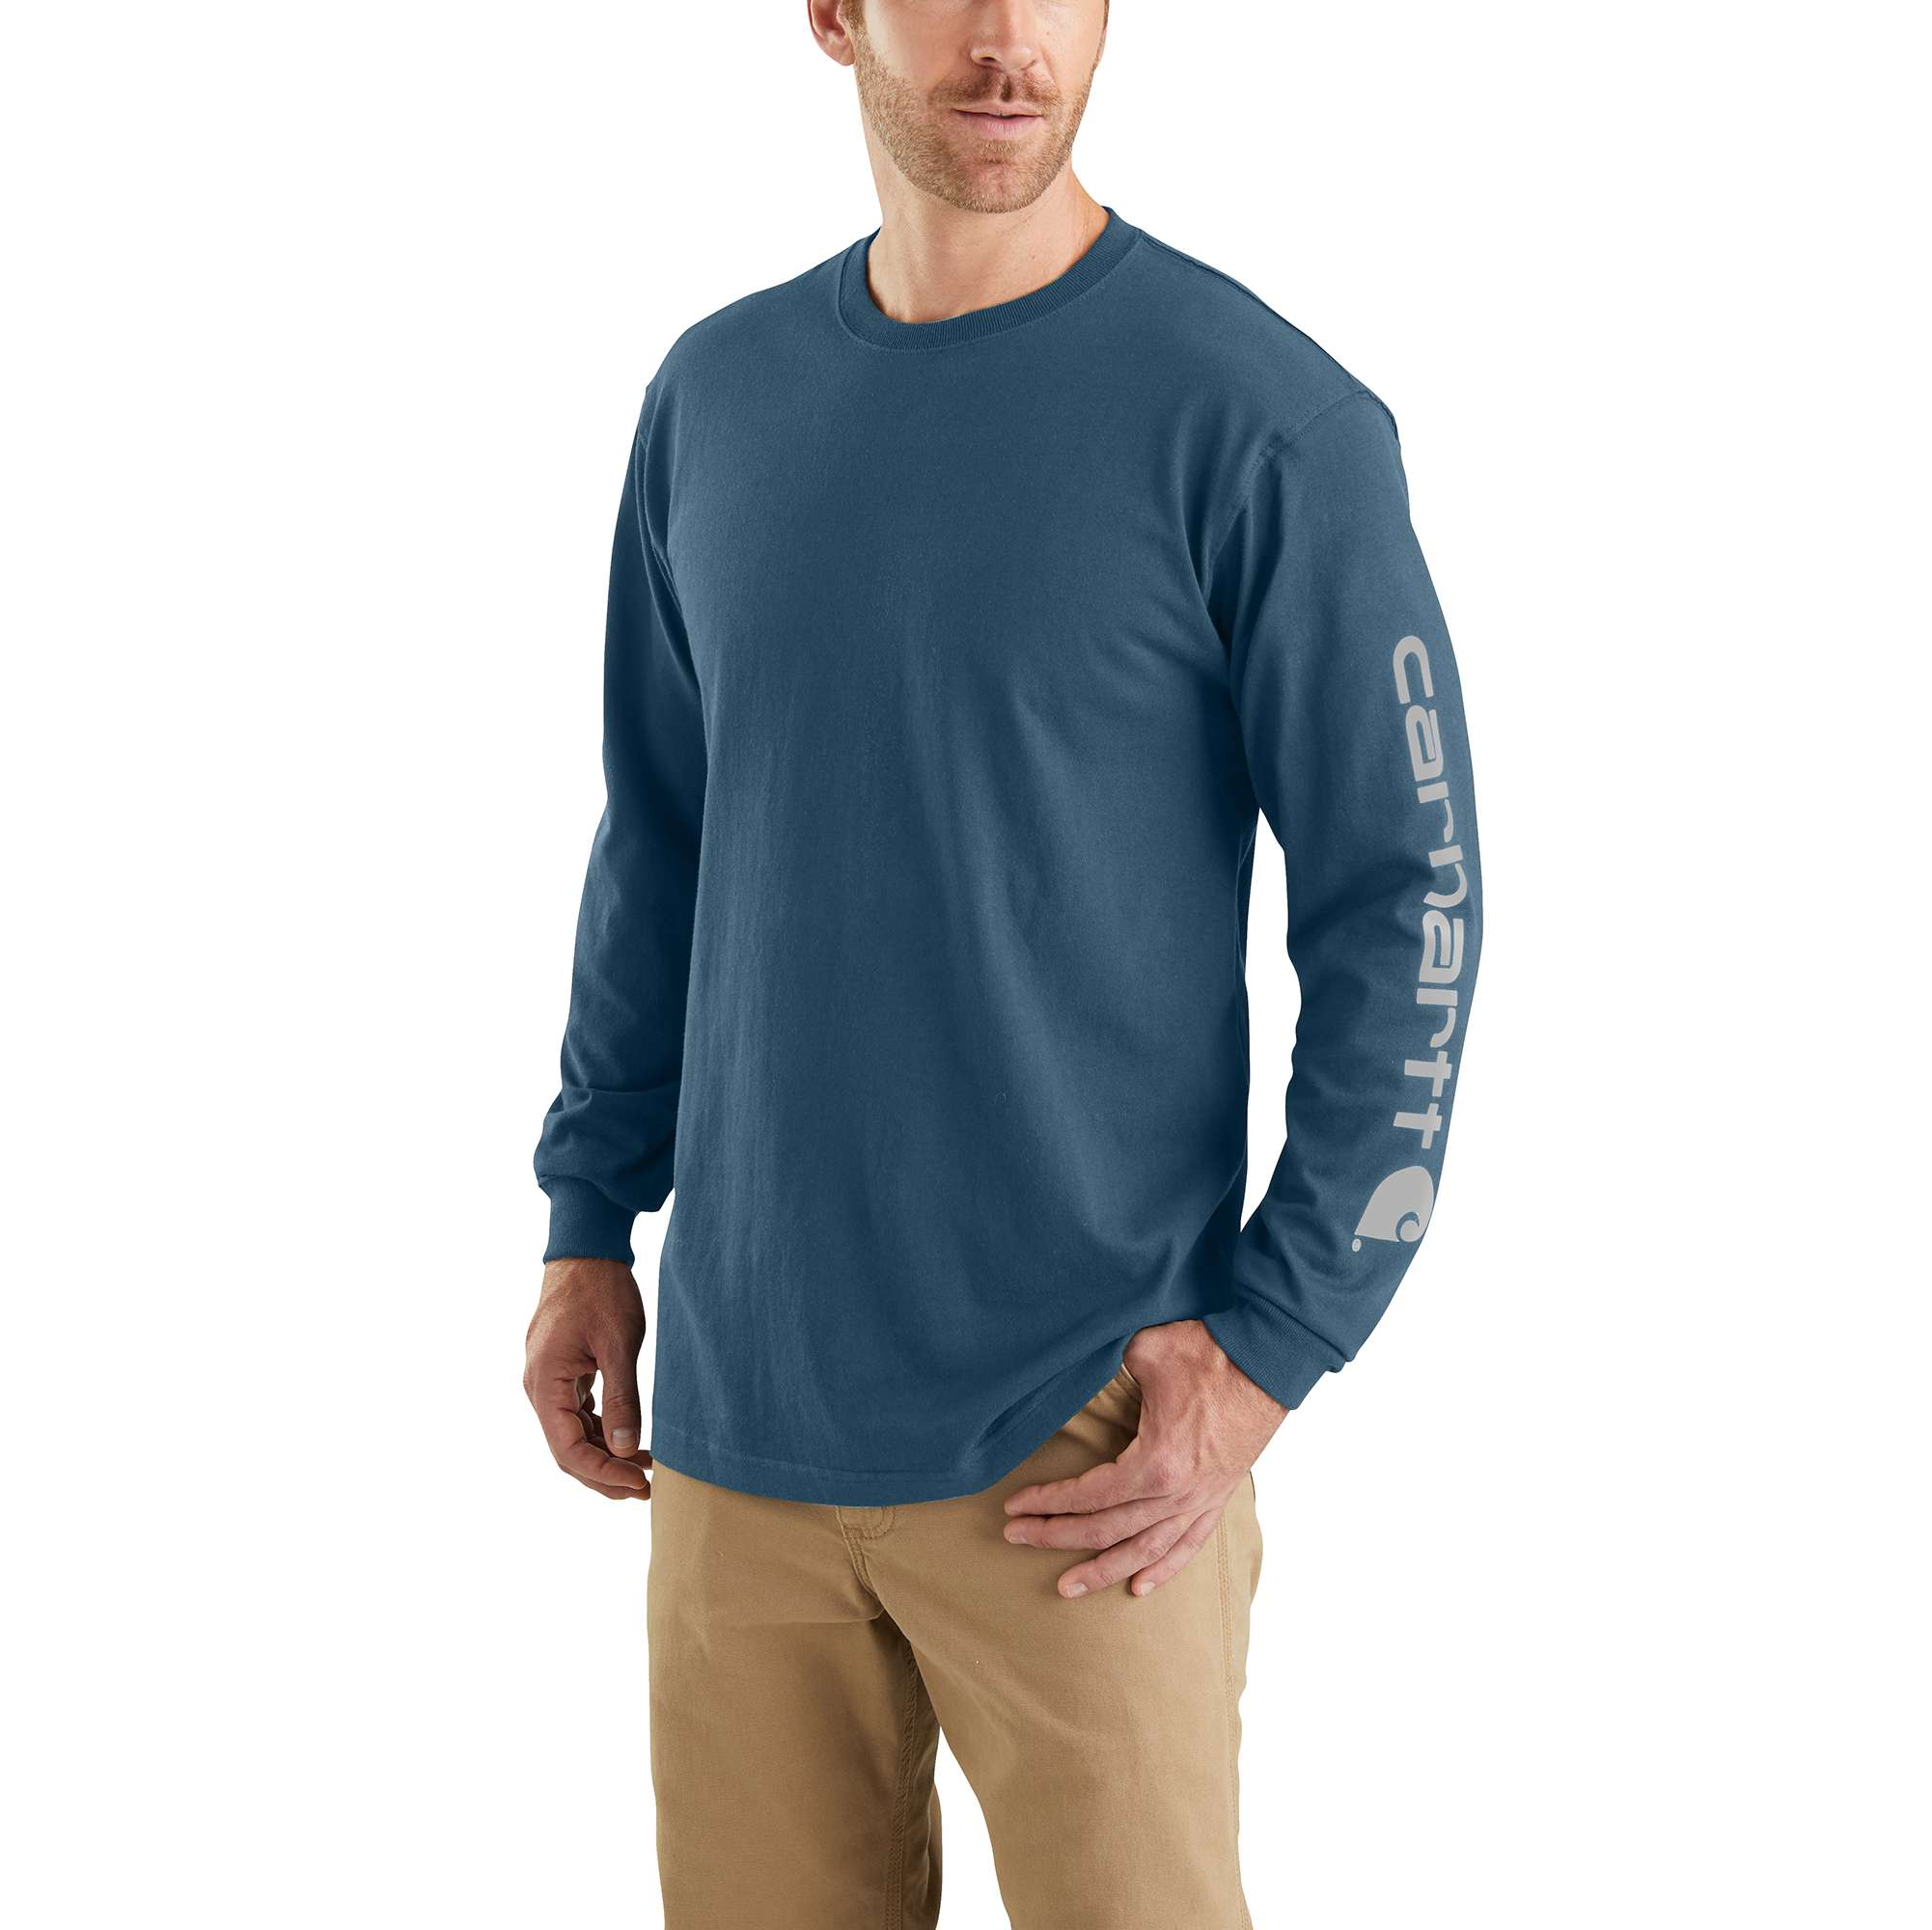 Men's Workwear Long-Sleeve Graphic Logo T-Shirt, Blue, swatch